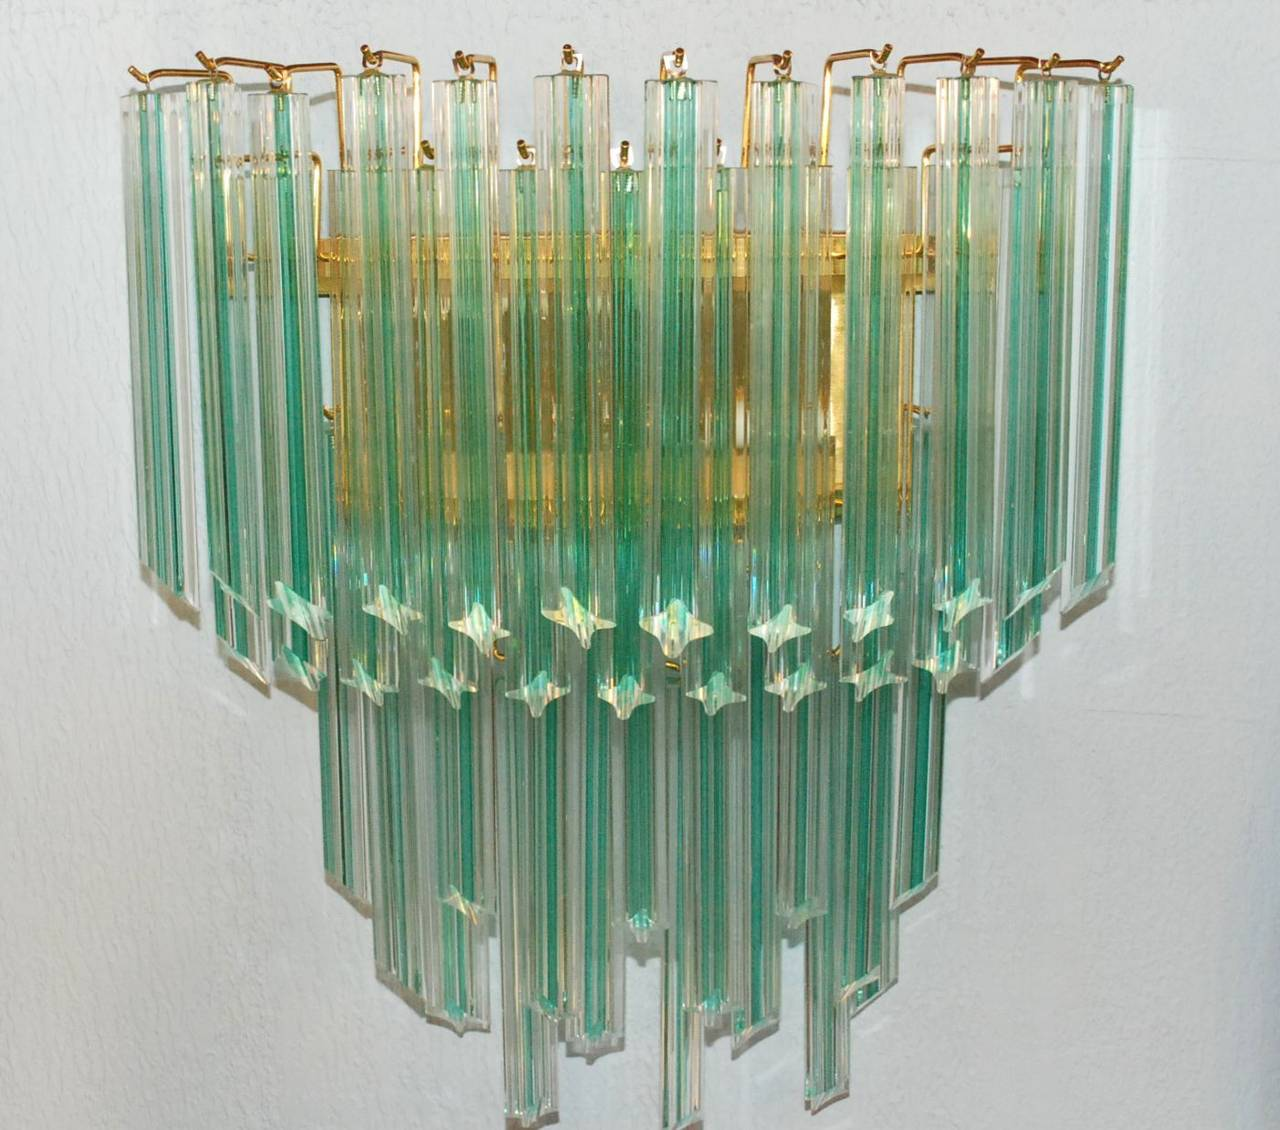 A pair of Venini aqua stripe (clear and aqua) sconces. Each sconce has two lights with brass frame and decorated with solid quadriedri (four-sided) hanging Murano glass tubes.